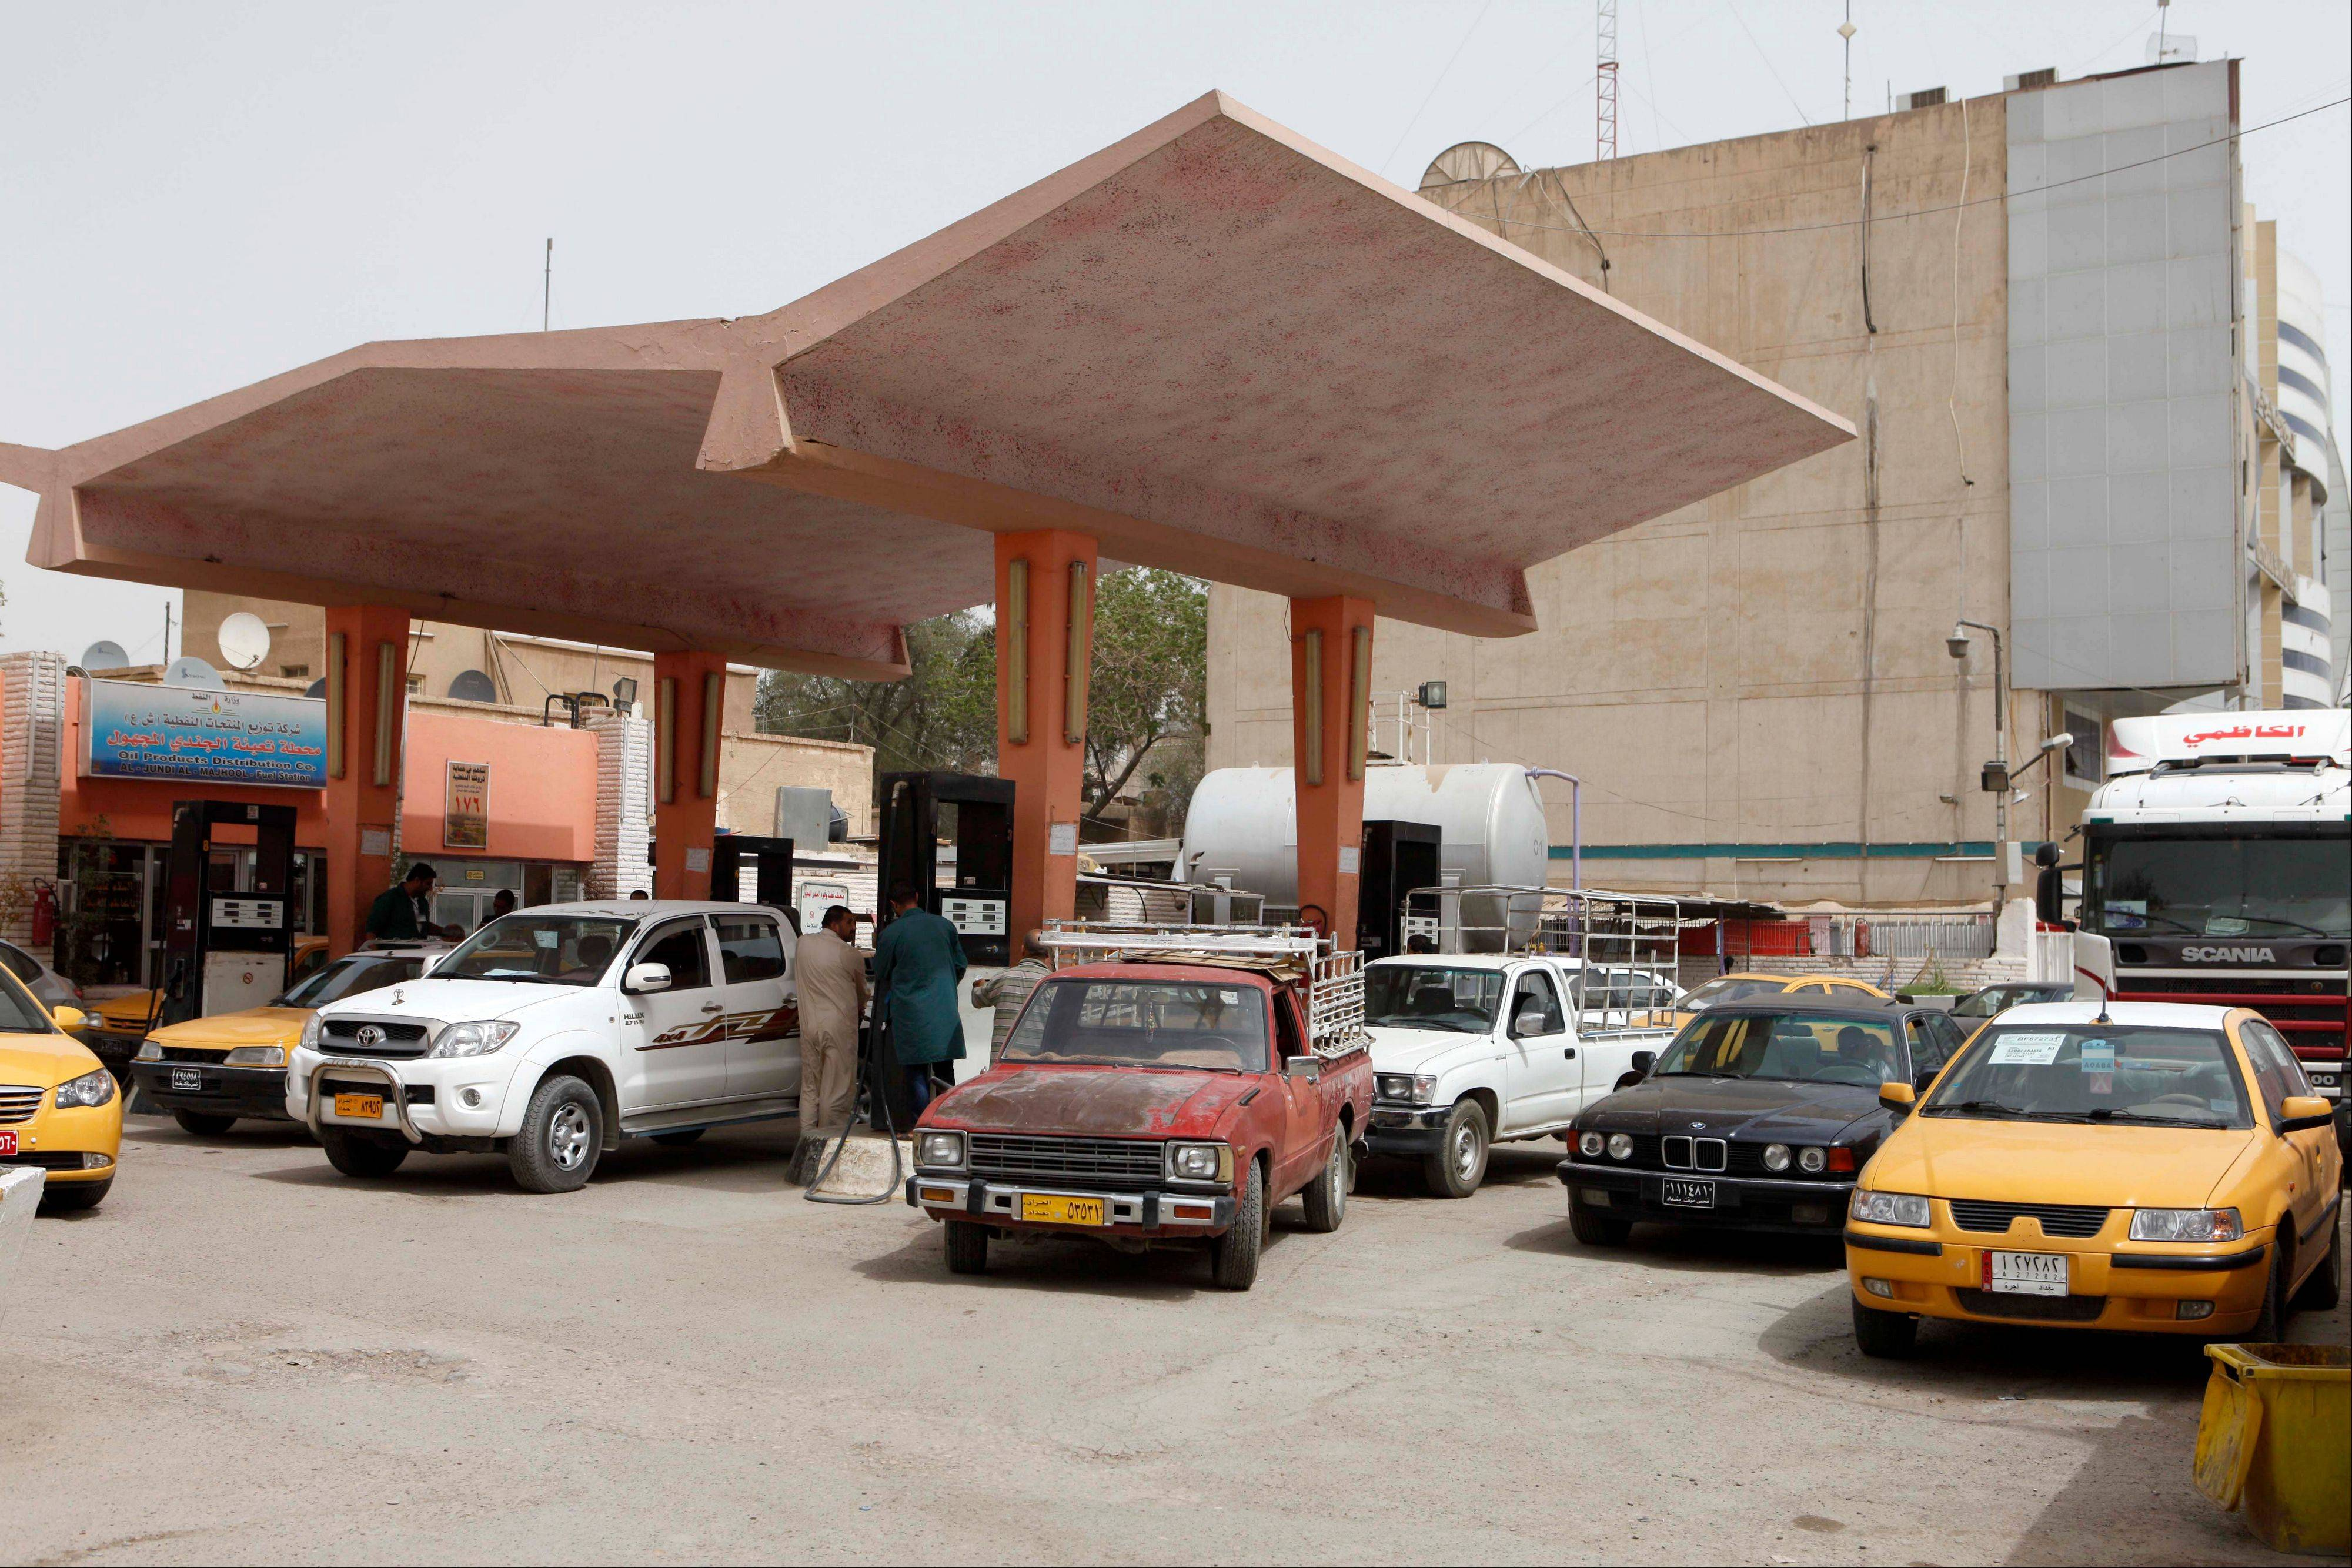 Iraqis fill up at a gas station in Baghdad, Iraq. Iraq is fast becoming an oil producing powerhouse.